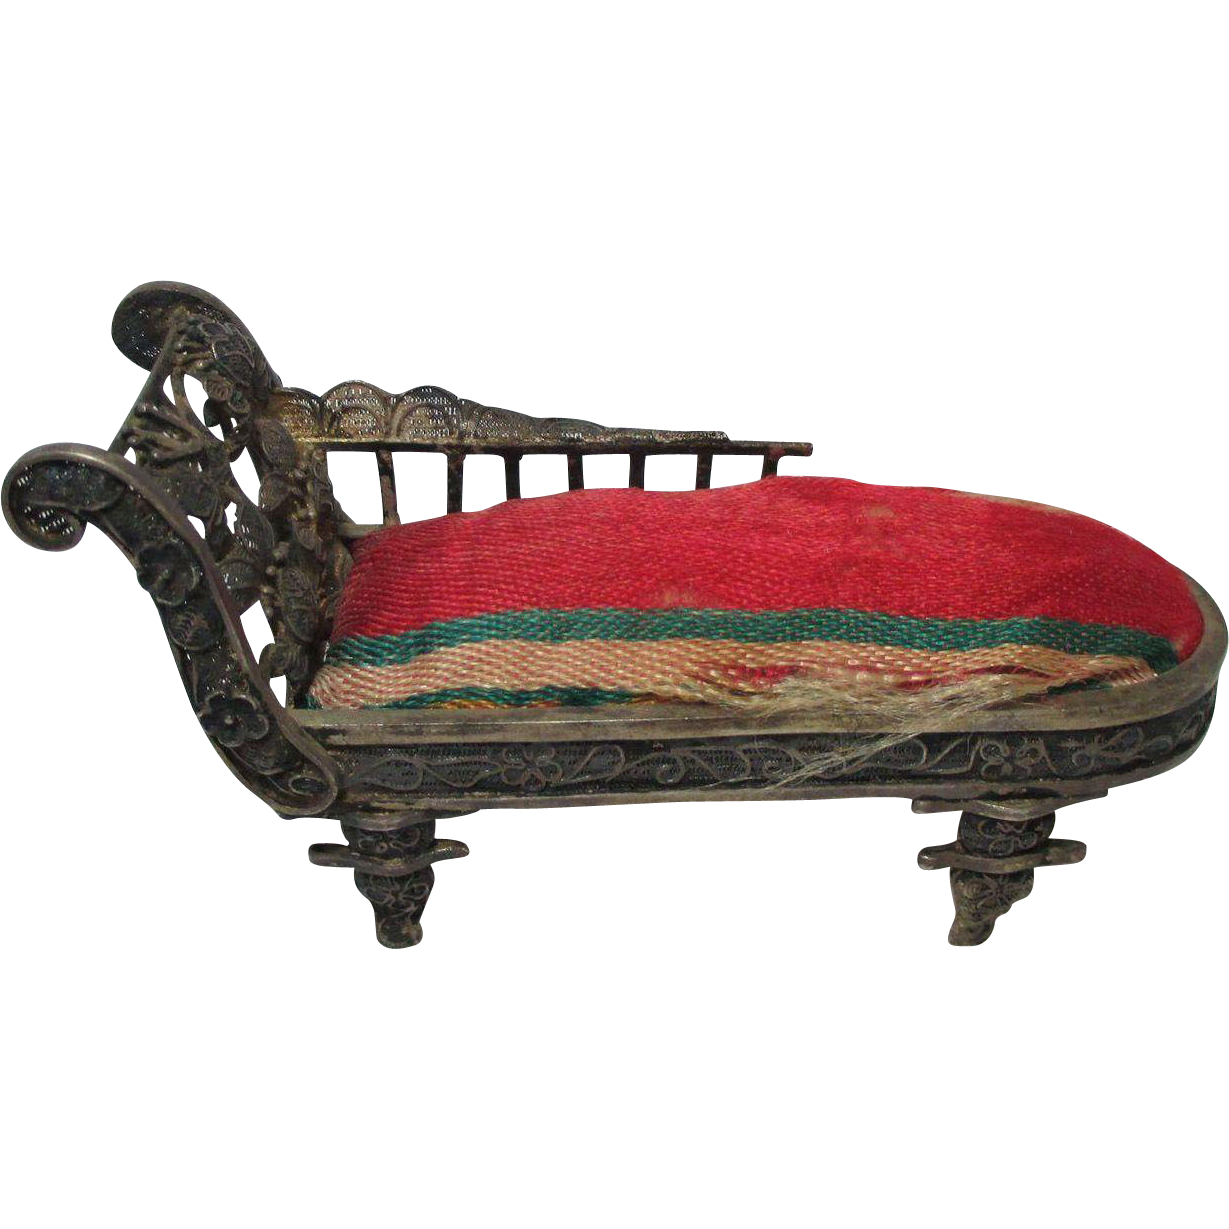 Superb img of Pin Cushion shaped as a FAINTING COUCH or SETTEE; Antique c1800's from  with #A42732 color and 1229x1229 pixels